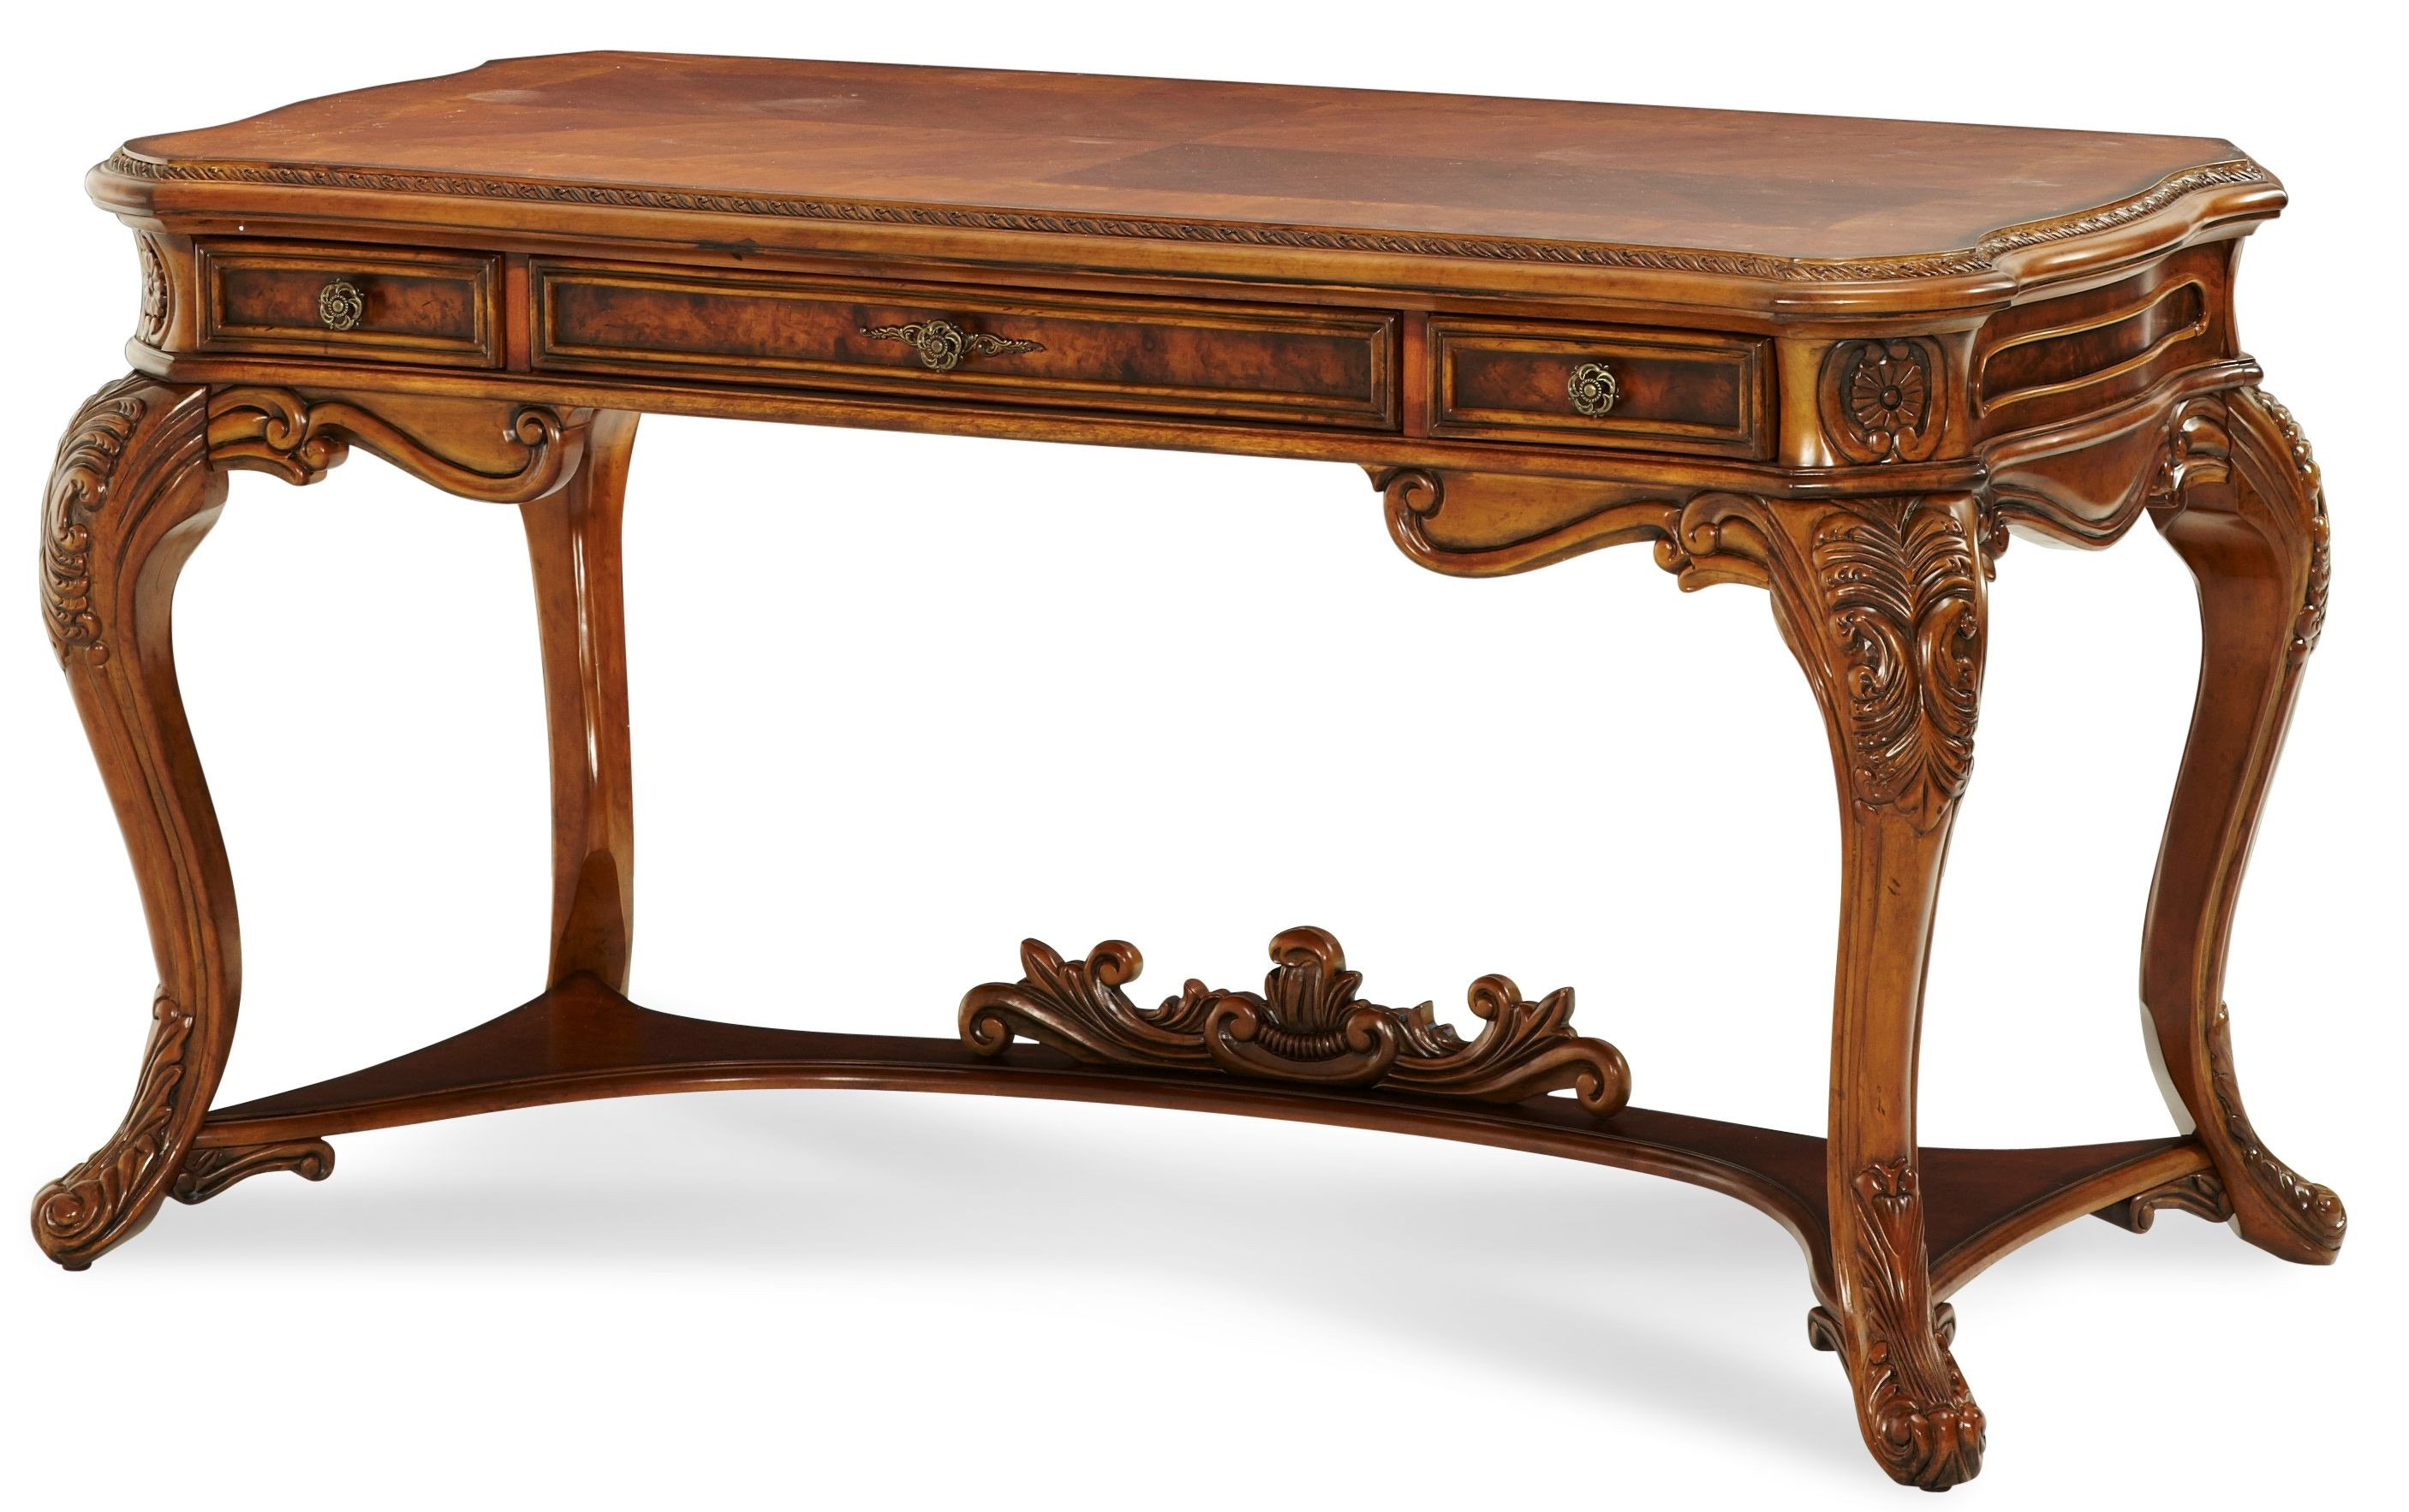 Palais Royale Vanity Writing Desk from Aico 35